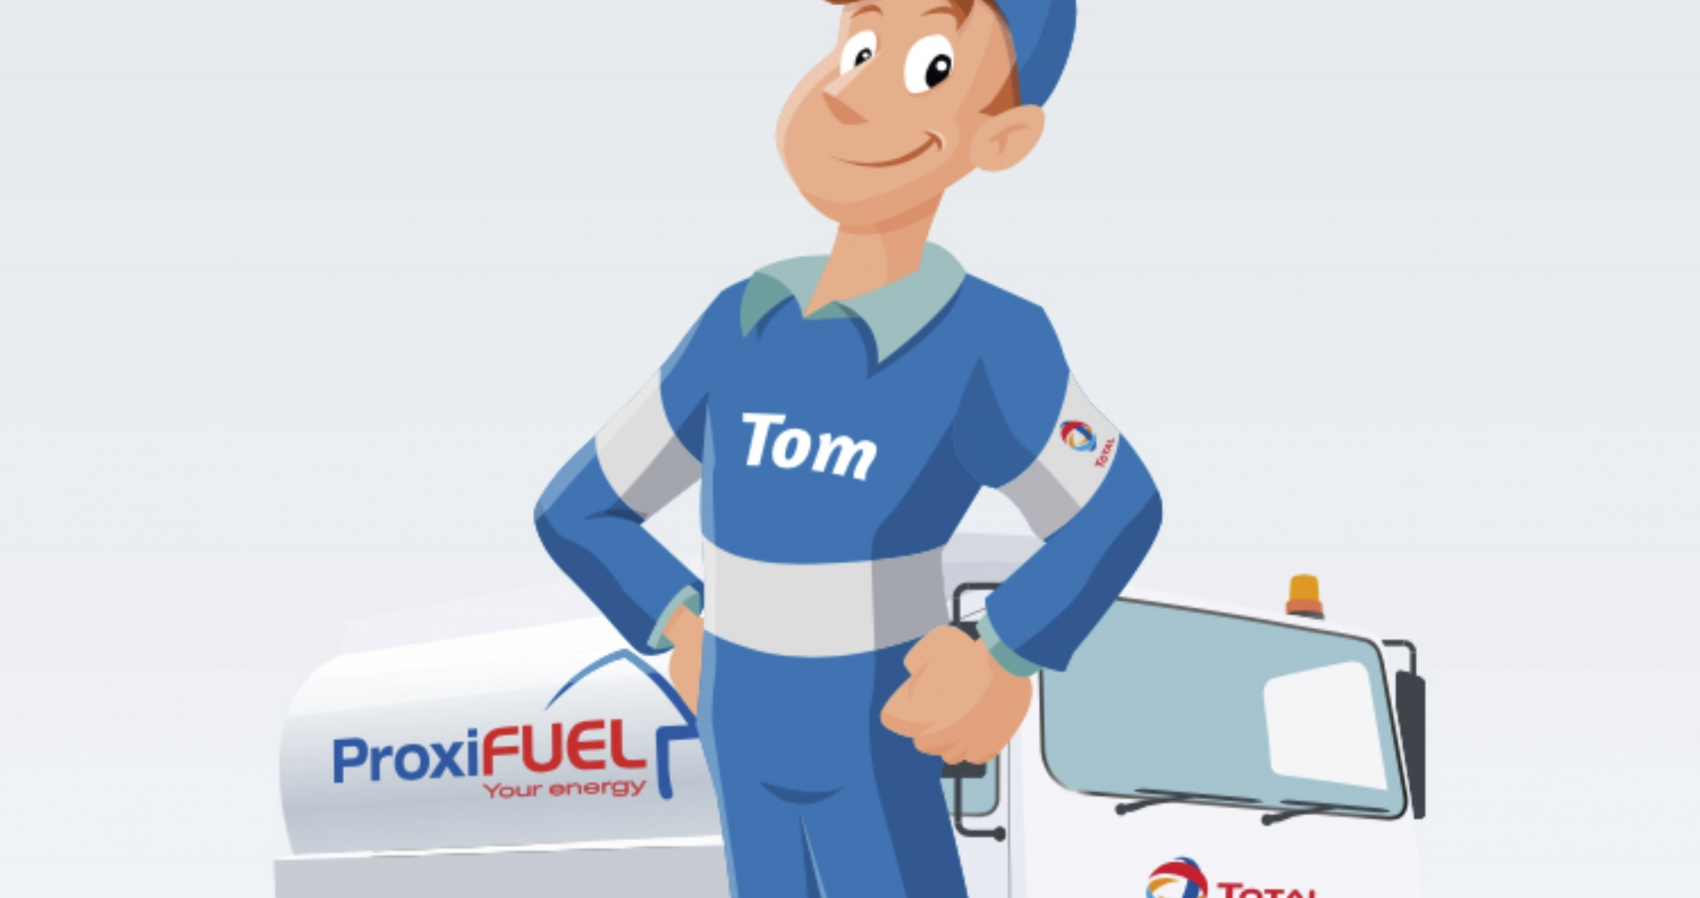 TOTAL Proxifuel Commercial App